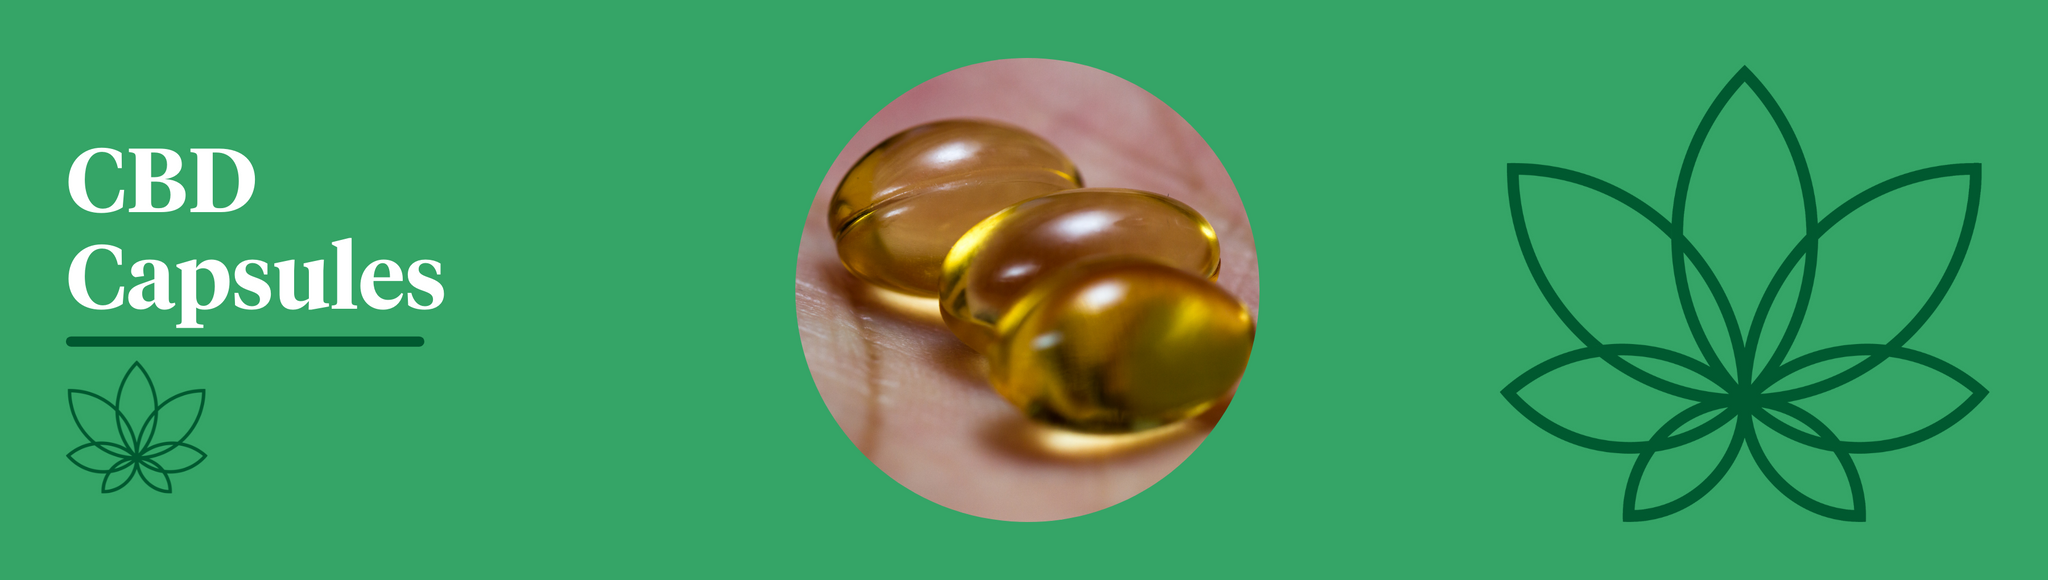 A green background with the Supreme CBD logo to the right with a large image in the centre showcasing a person's hand holding 3 CBD capsules.